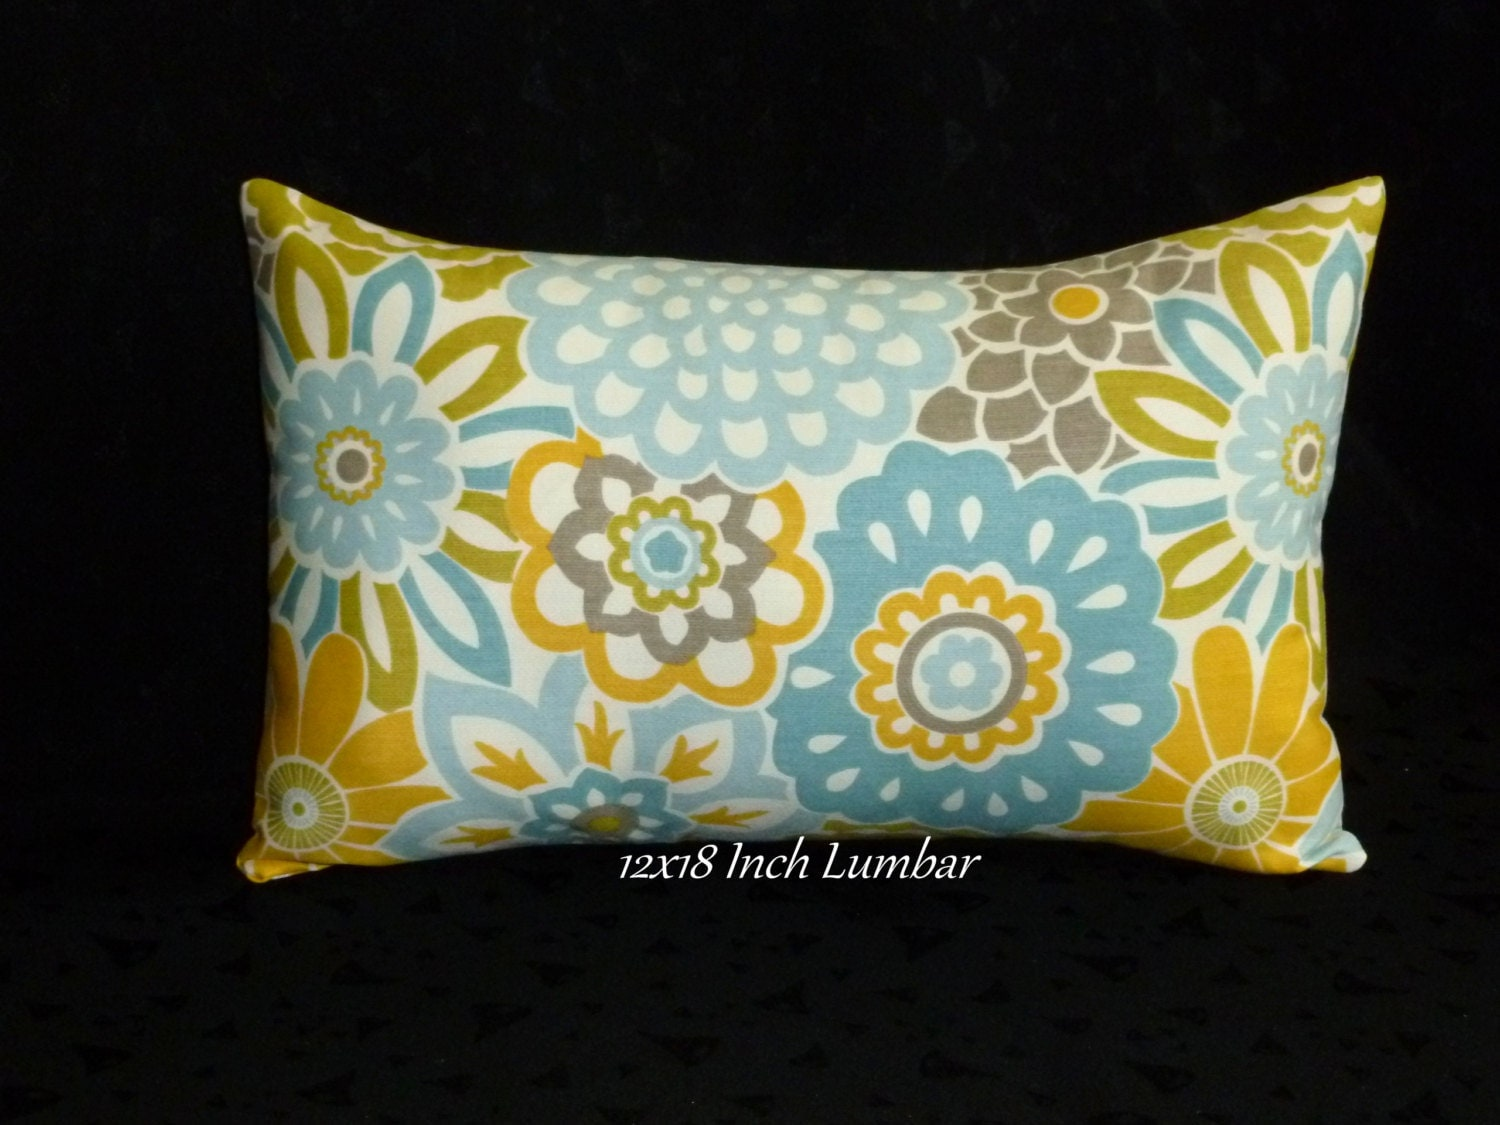 Decorative Throw Pillow Lumbar Pillow. Accent Pillow 18x12